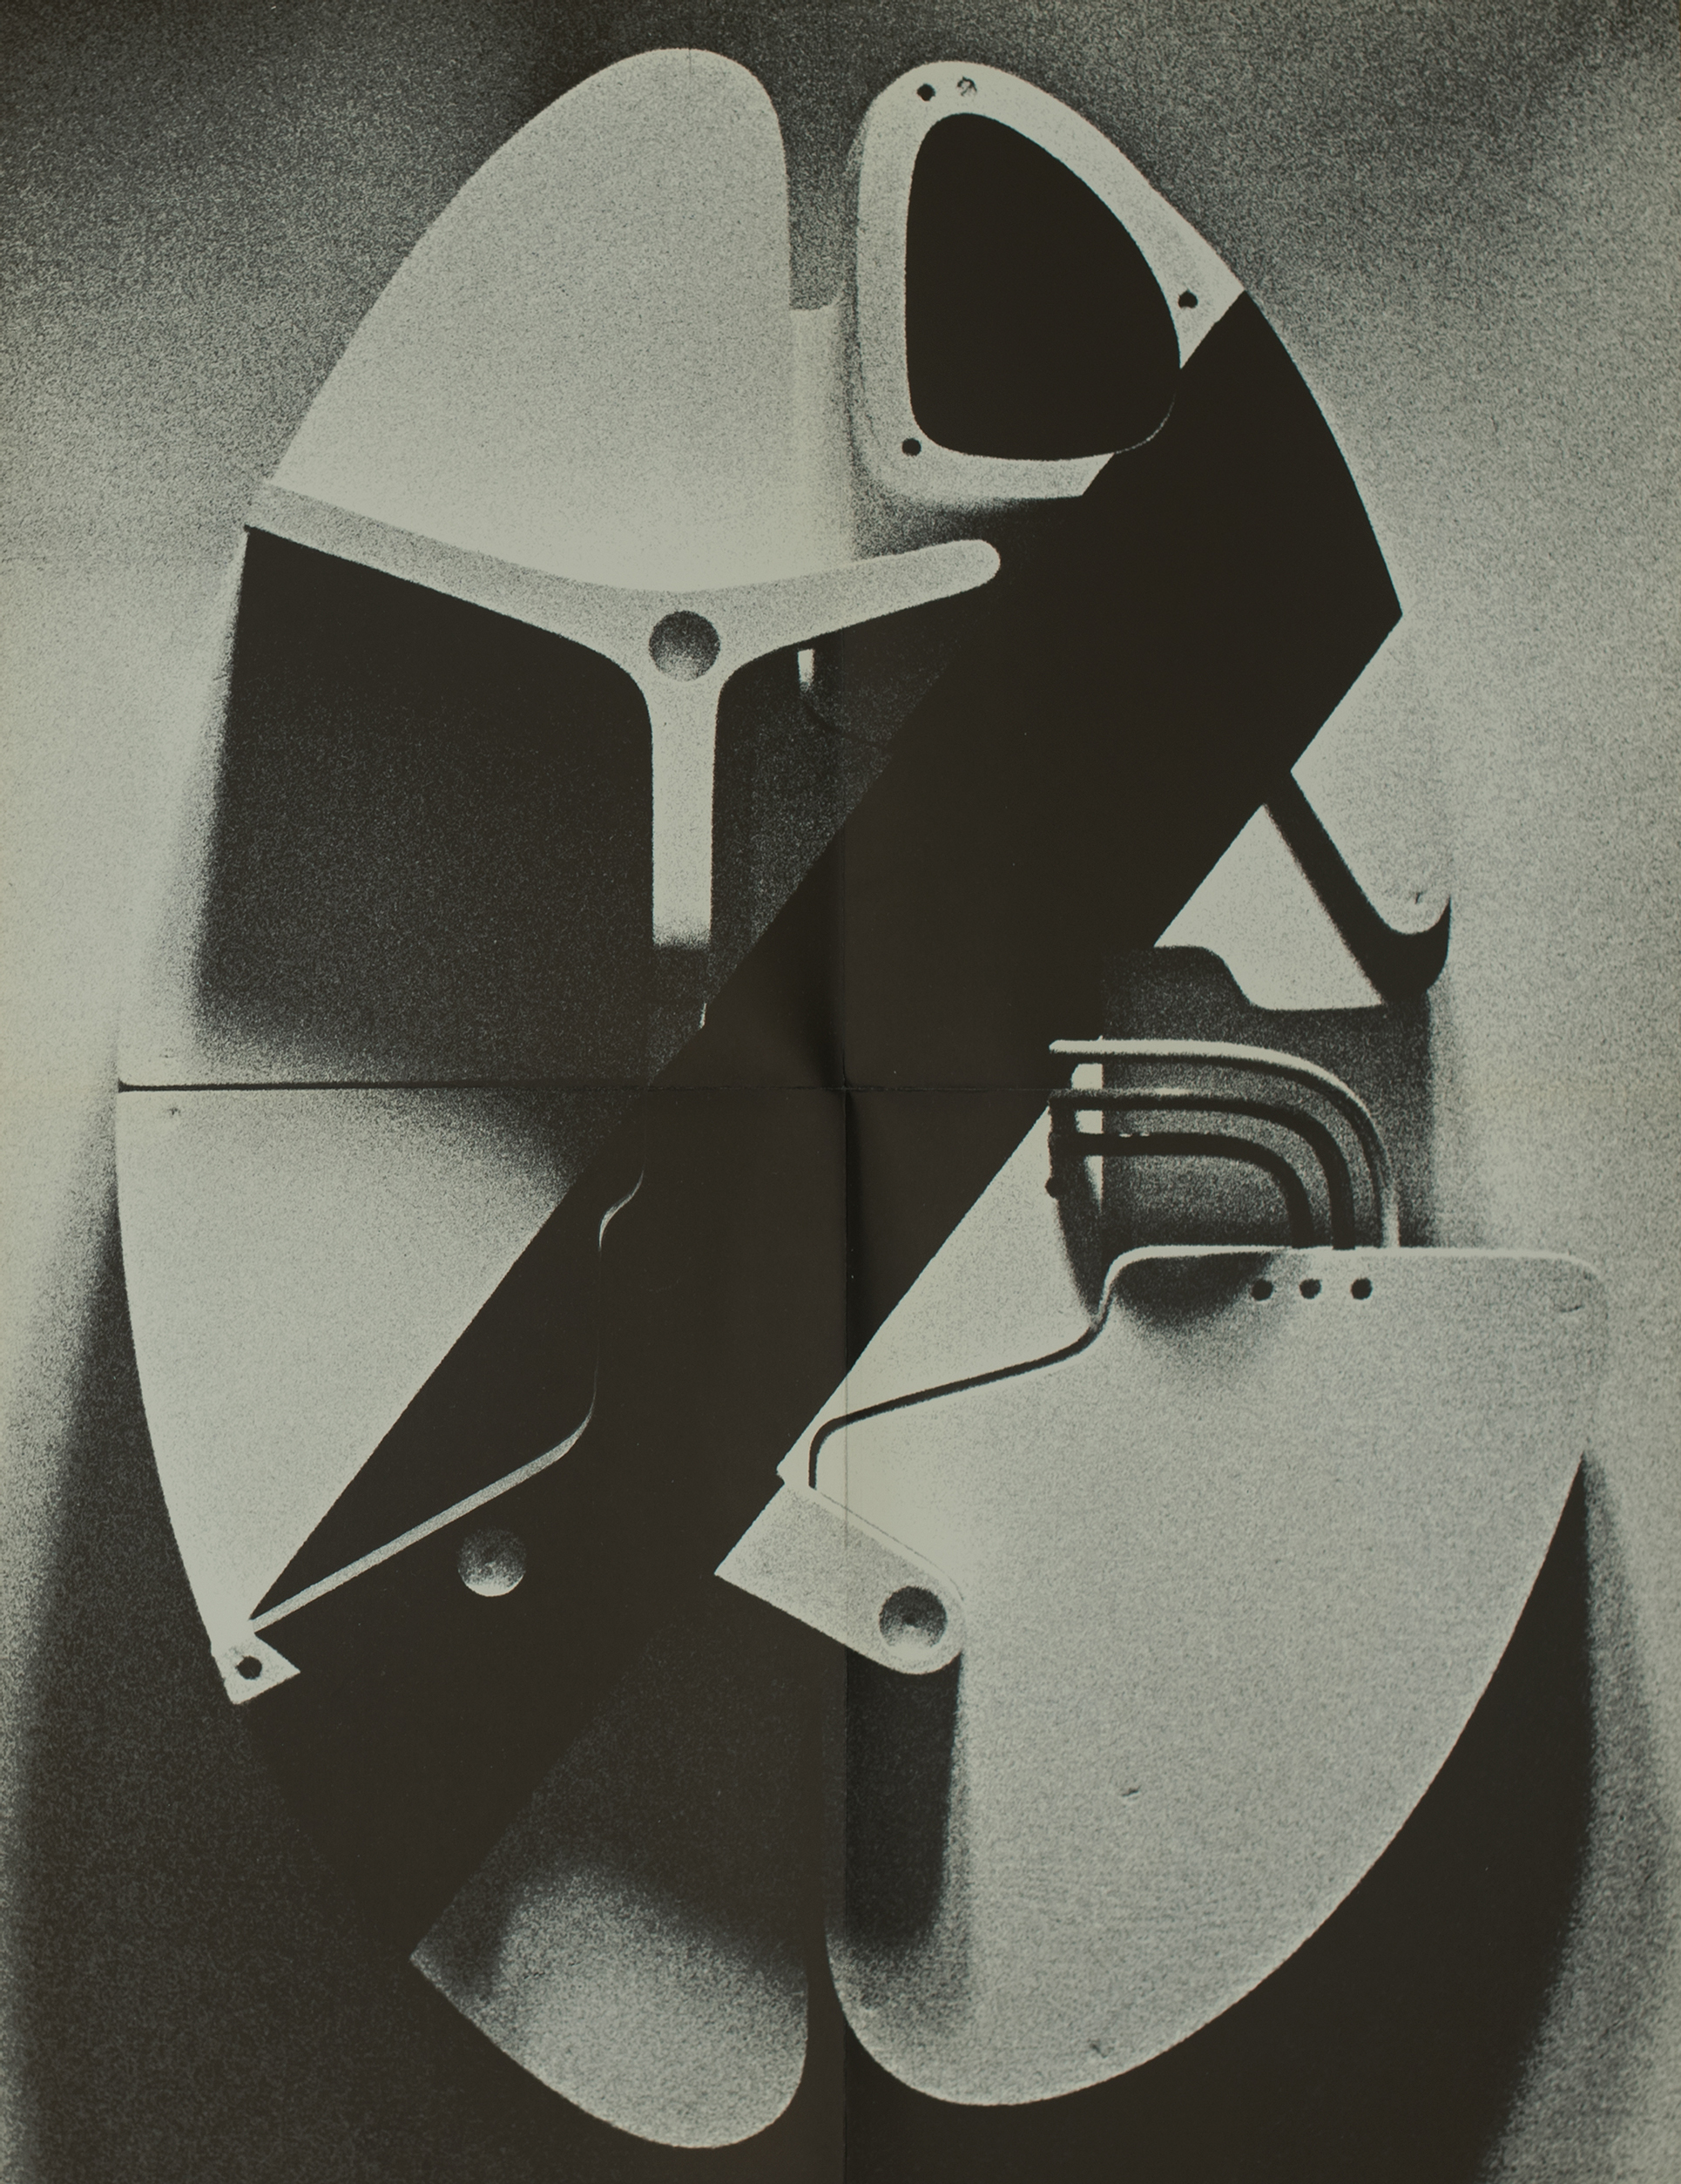 Poster features a grainy, black and white photograph of an abstract sculpture.